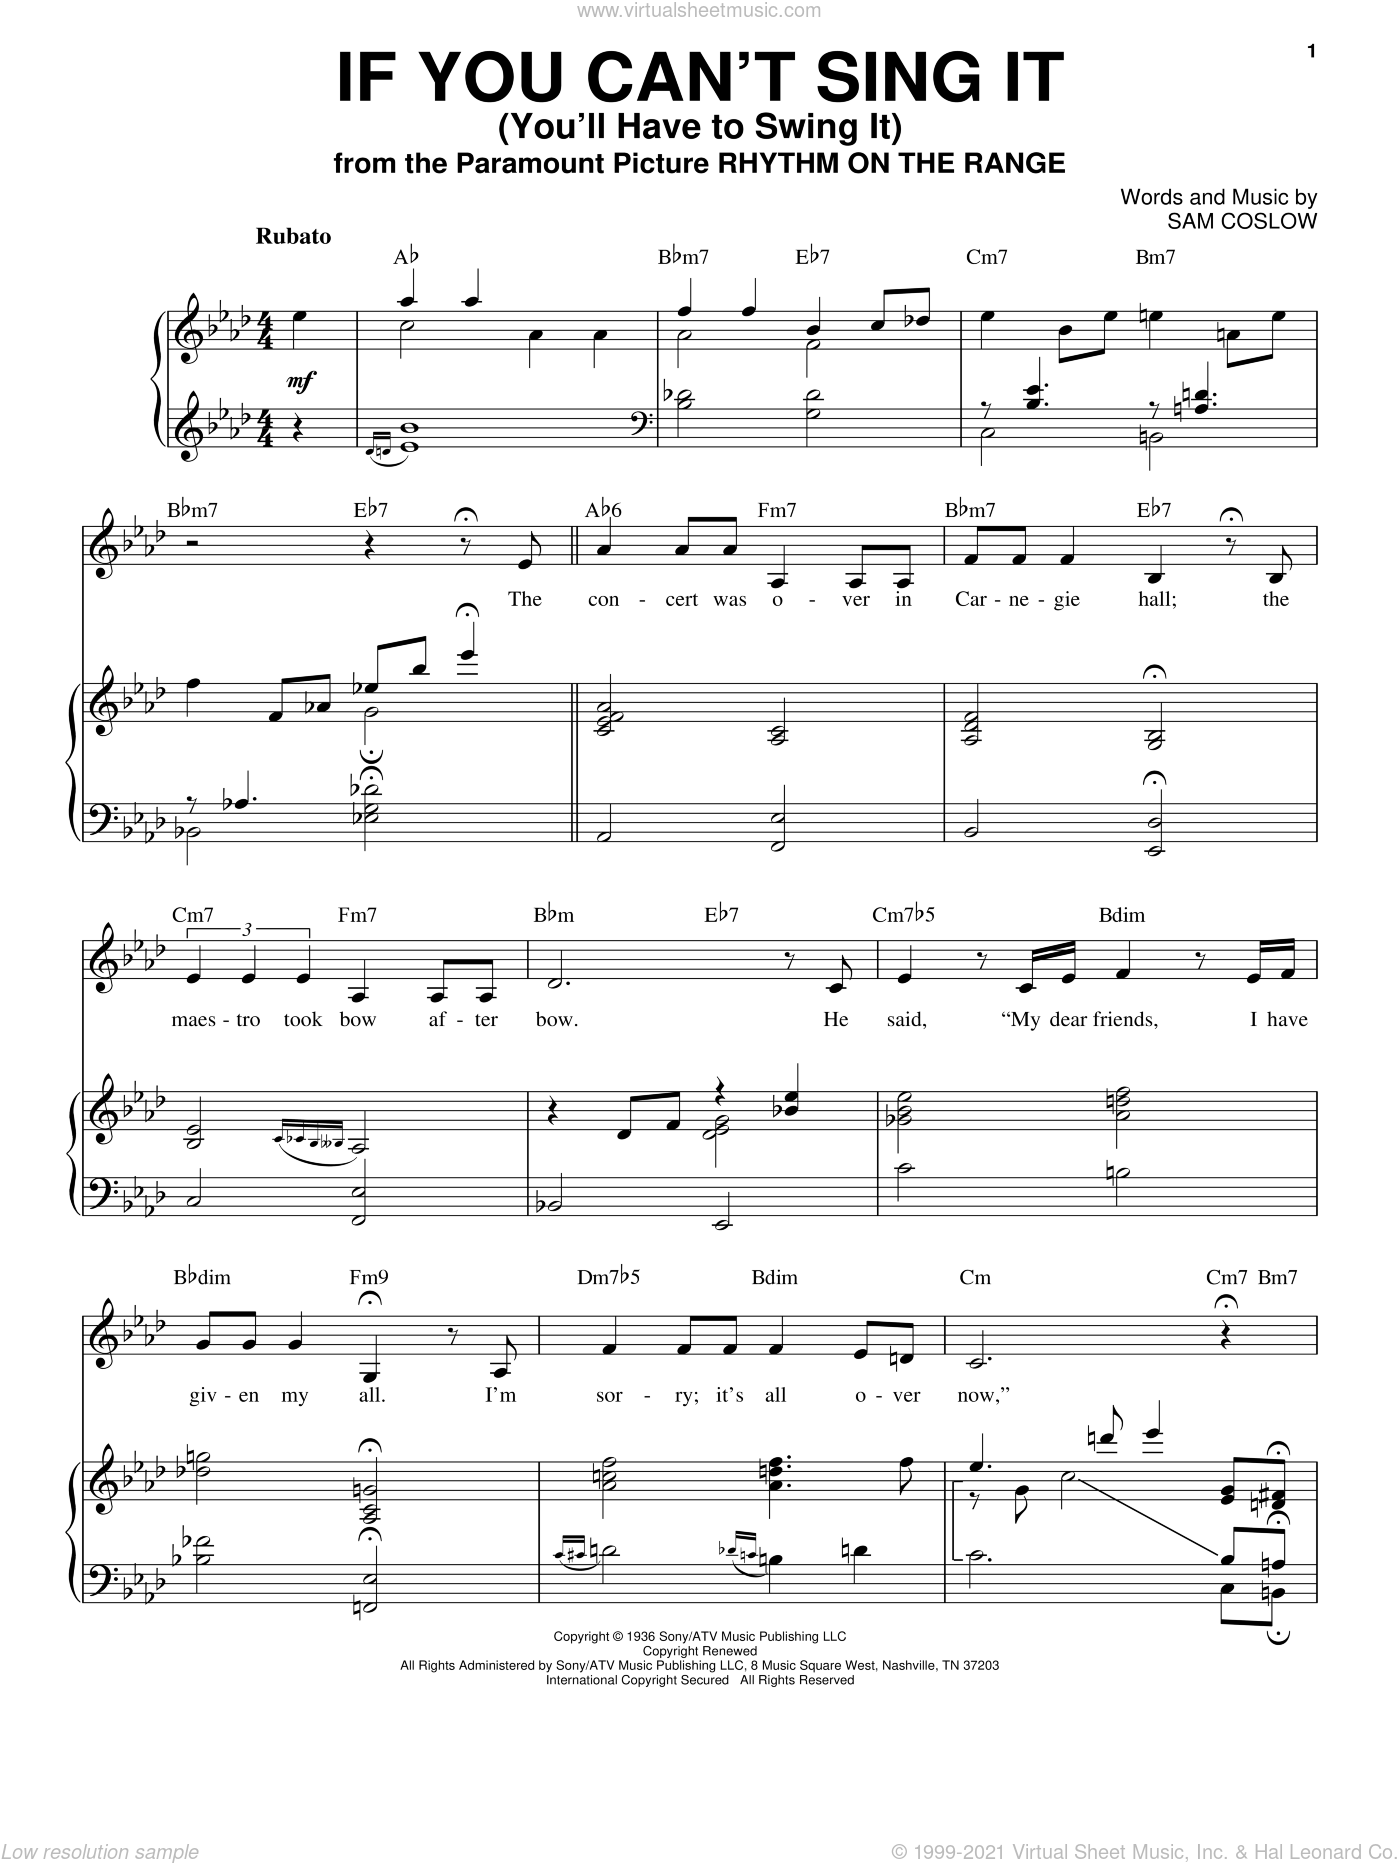 If You Can't Sing It (You'll Have To Swing It) sheet music for voice and piano by Sam Coslow, Ella Fitzgerald and Nikki Yanofsky. Score Image Preview.